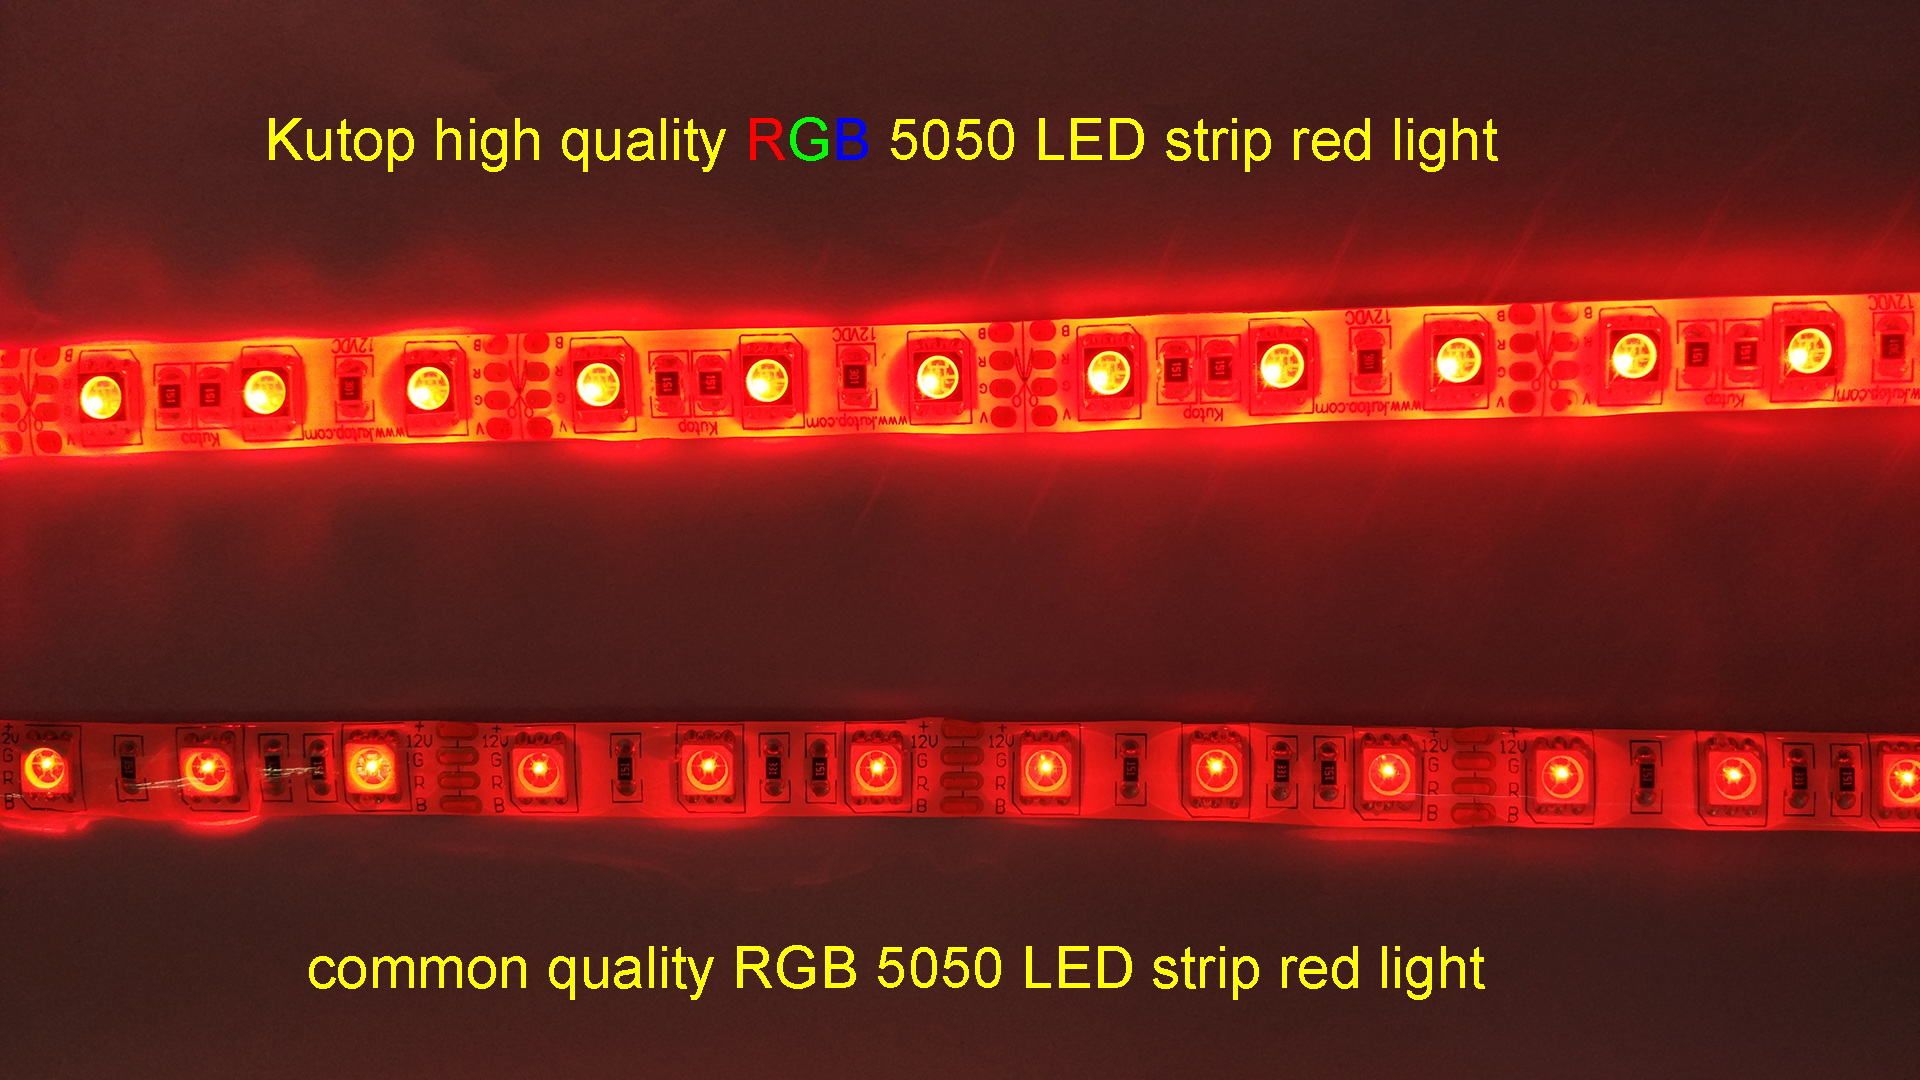 Kutop high quality RGB 5050 LED strip red light